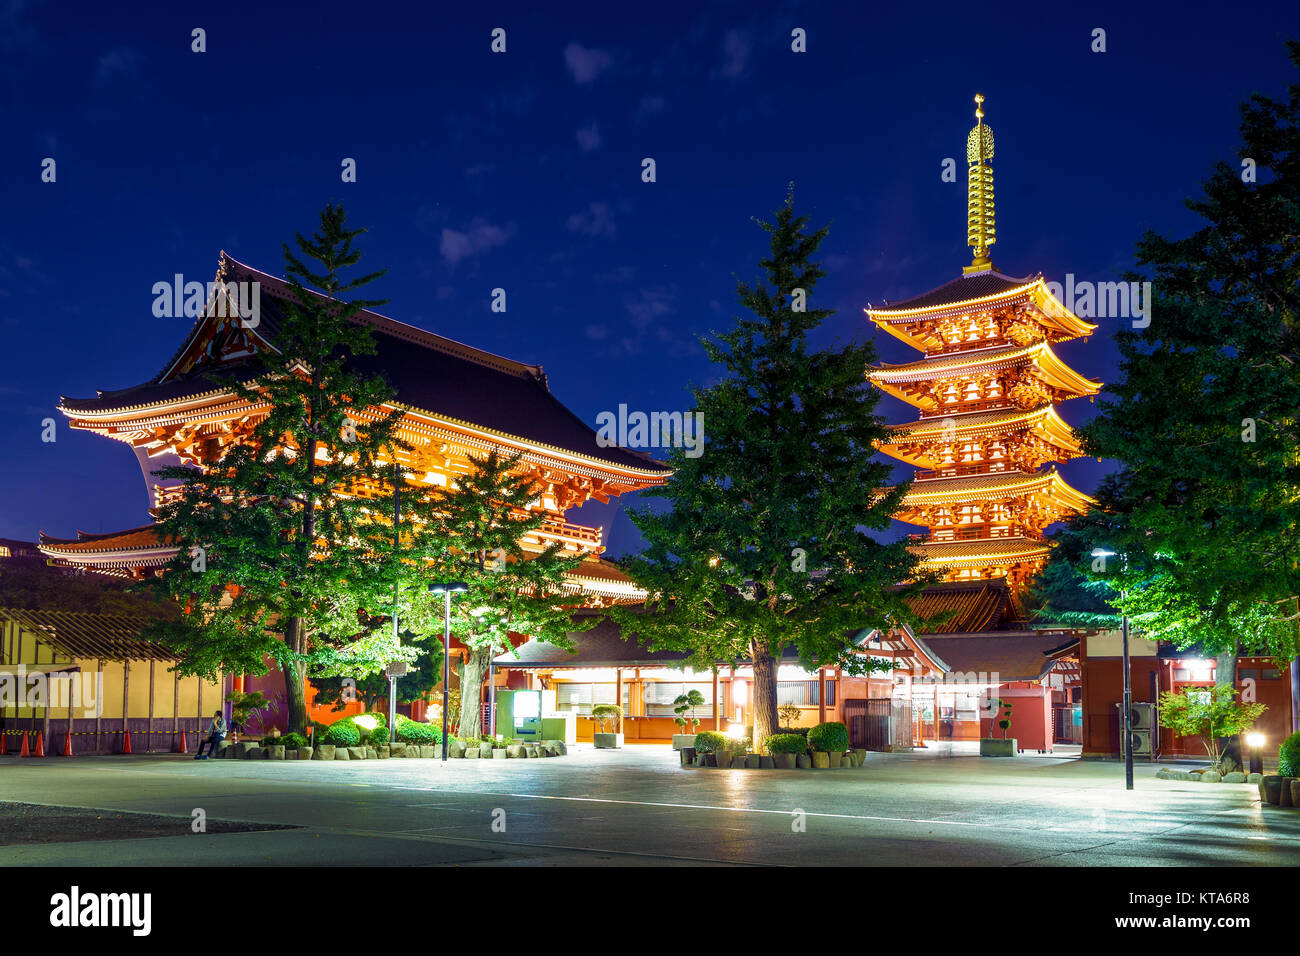 night view of sensoji, an ancient Buddhist temple - Stock Image